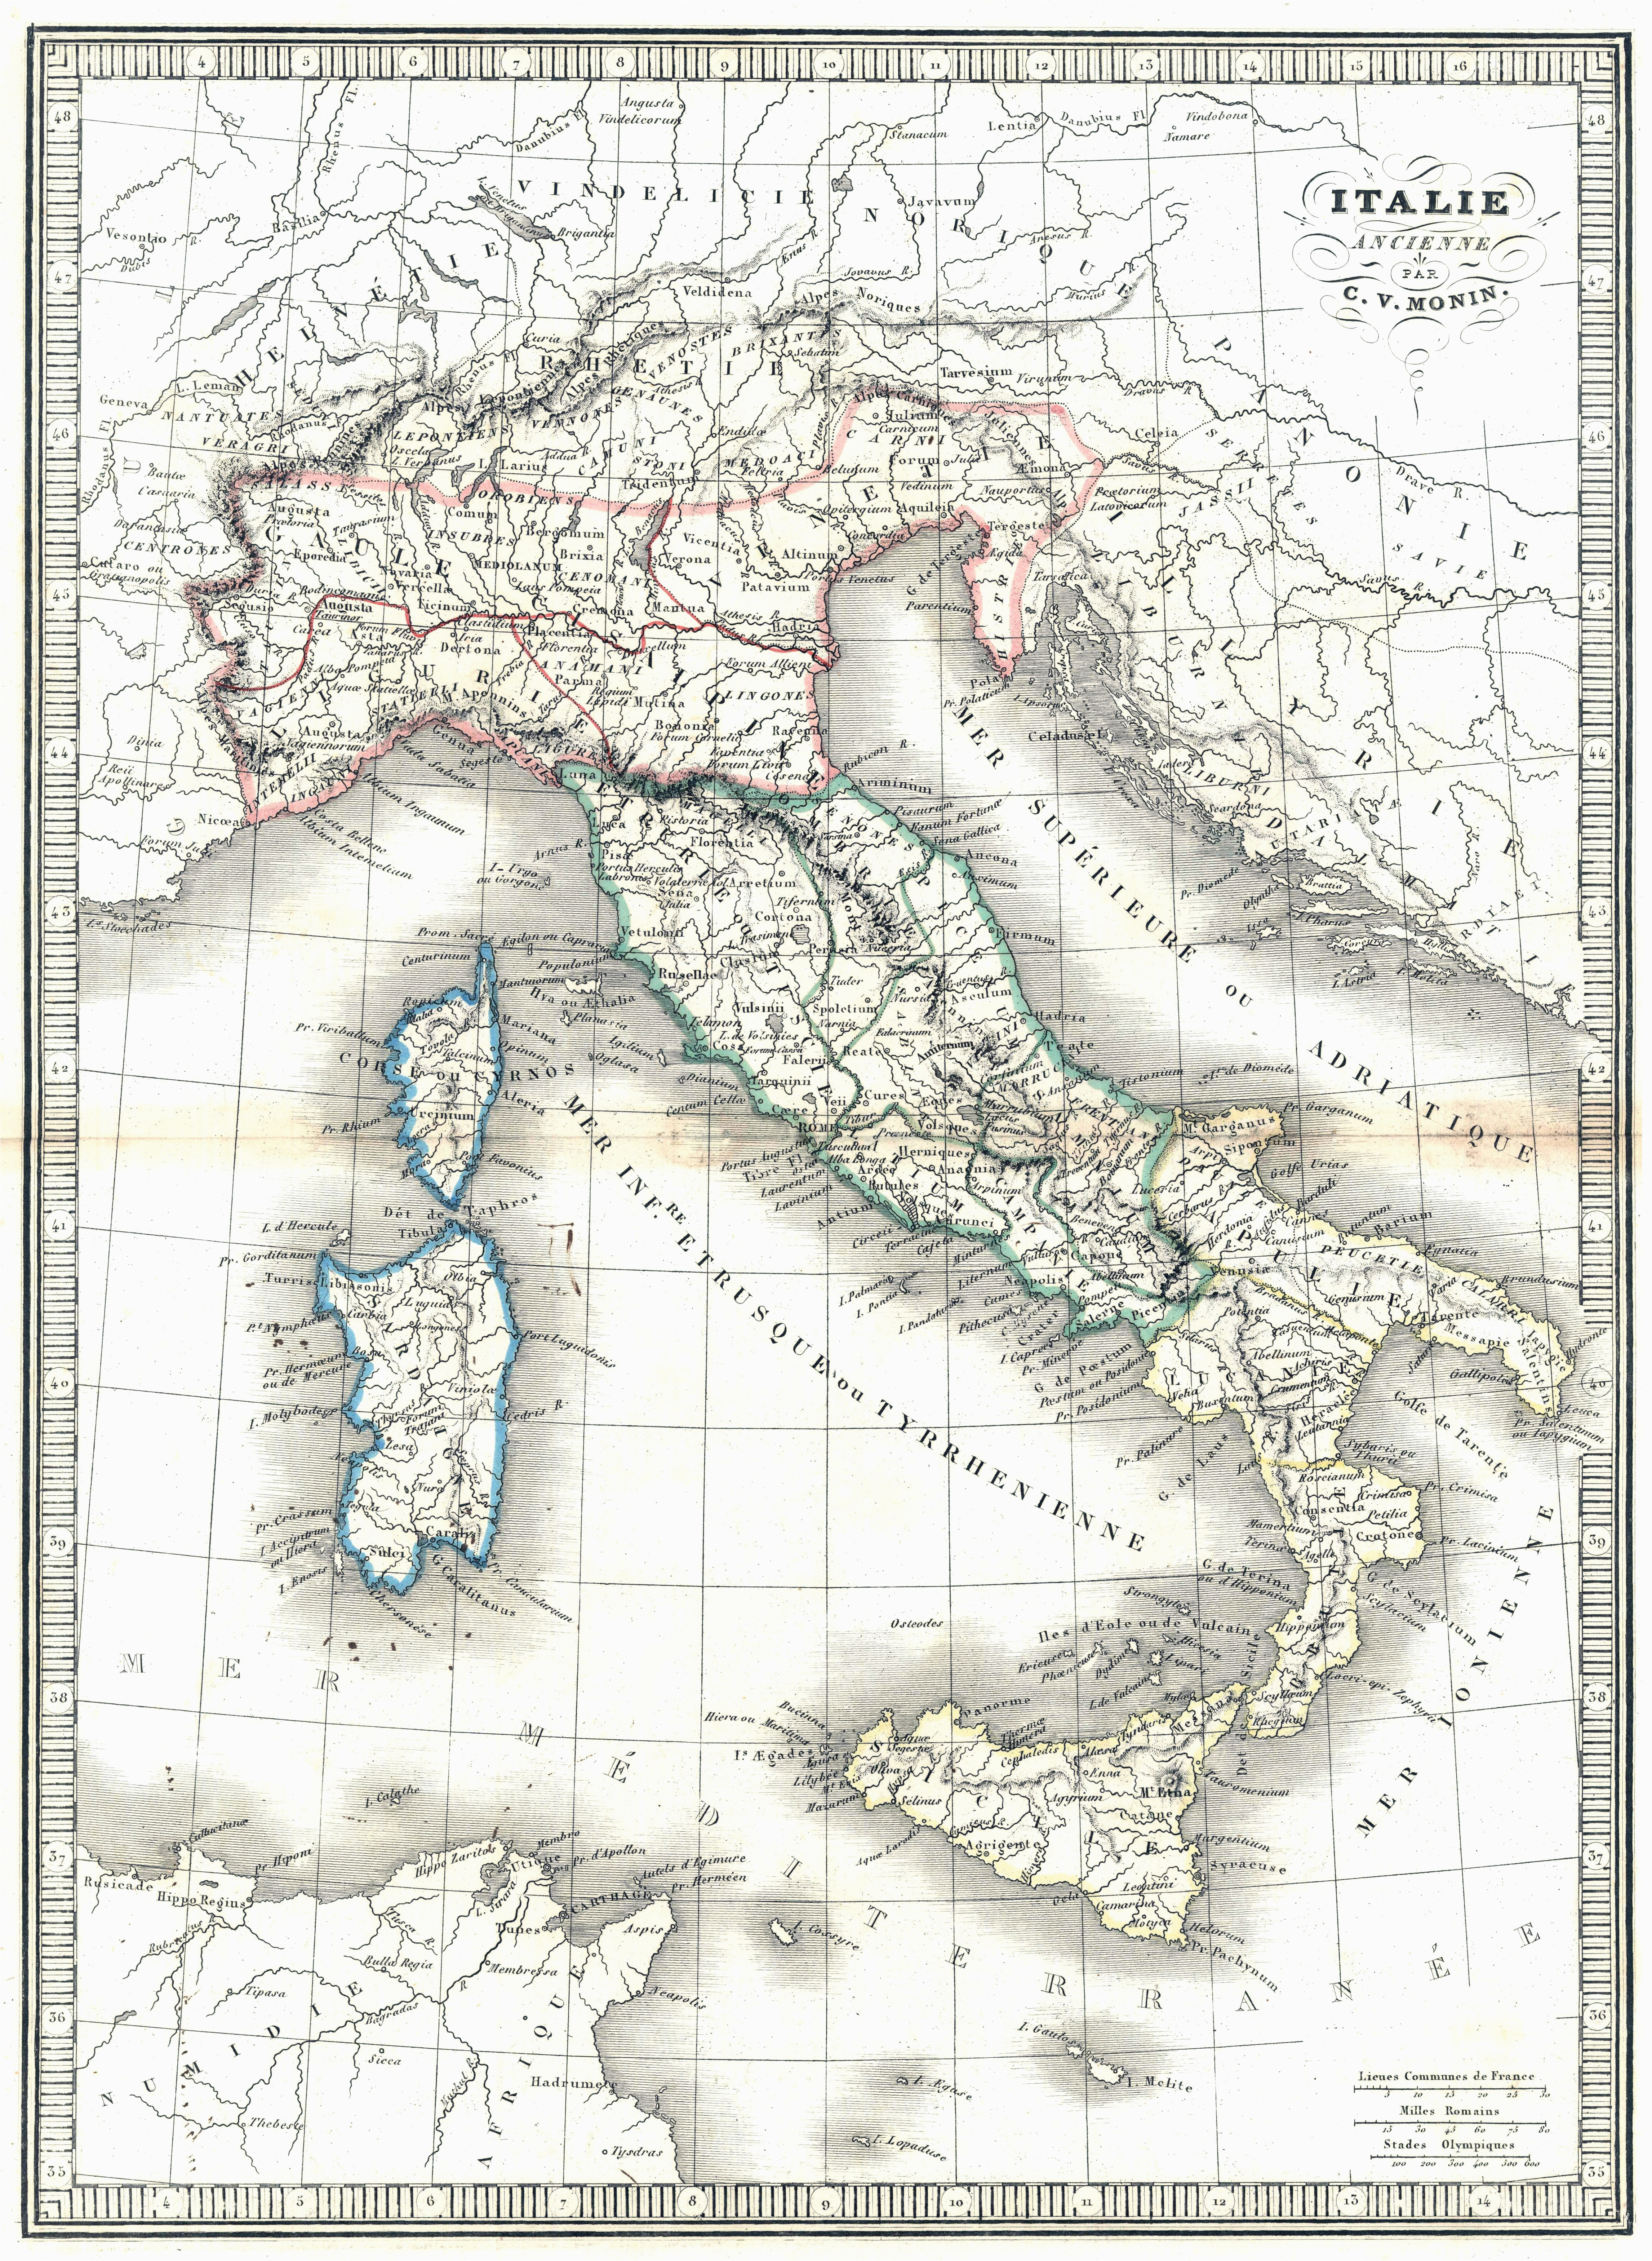 military history of italy during world war i wikipedia